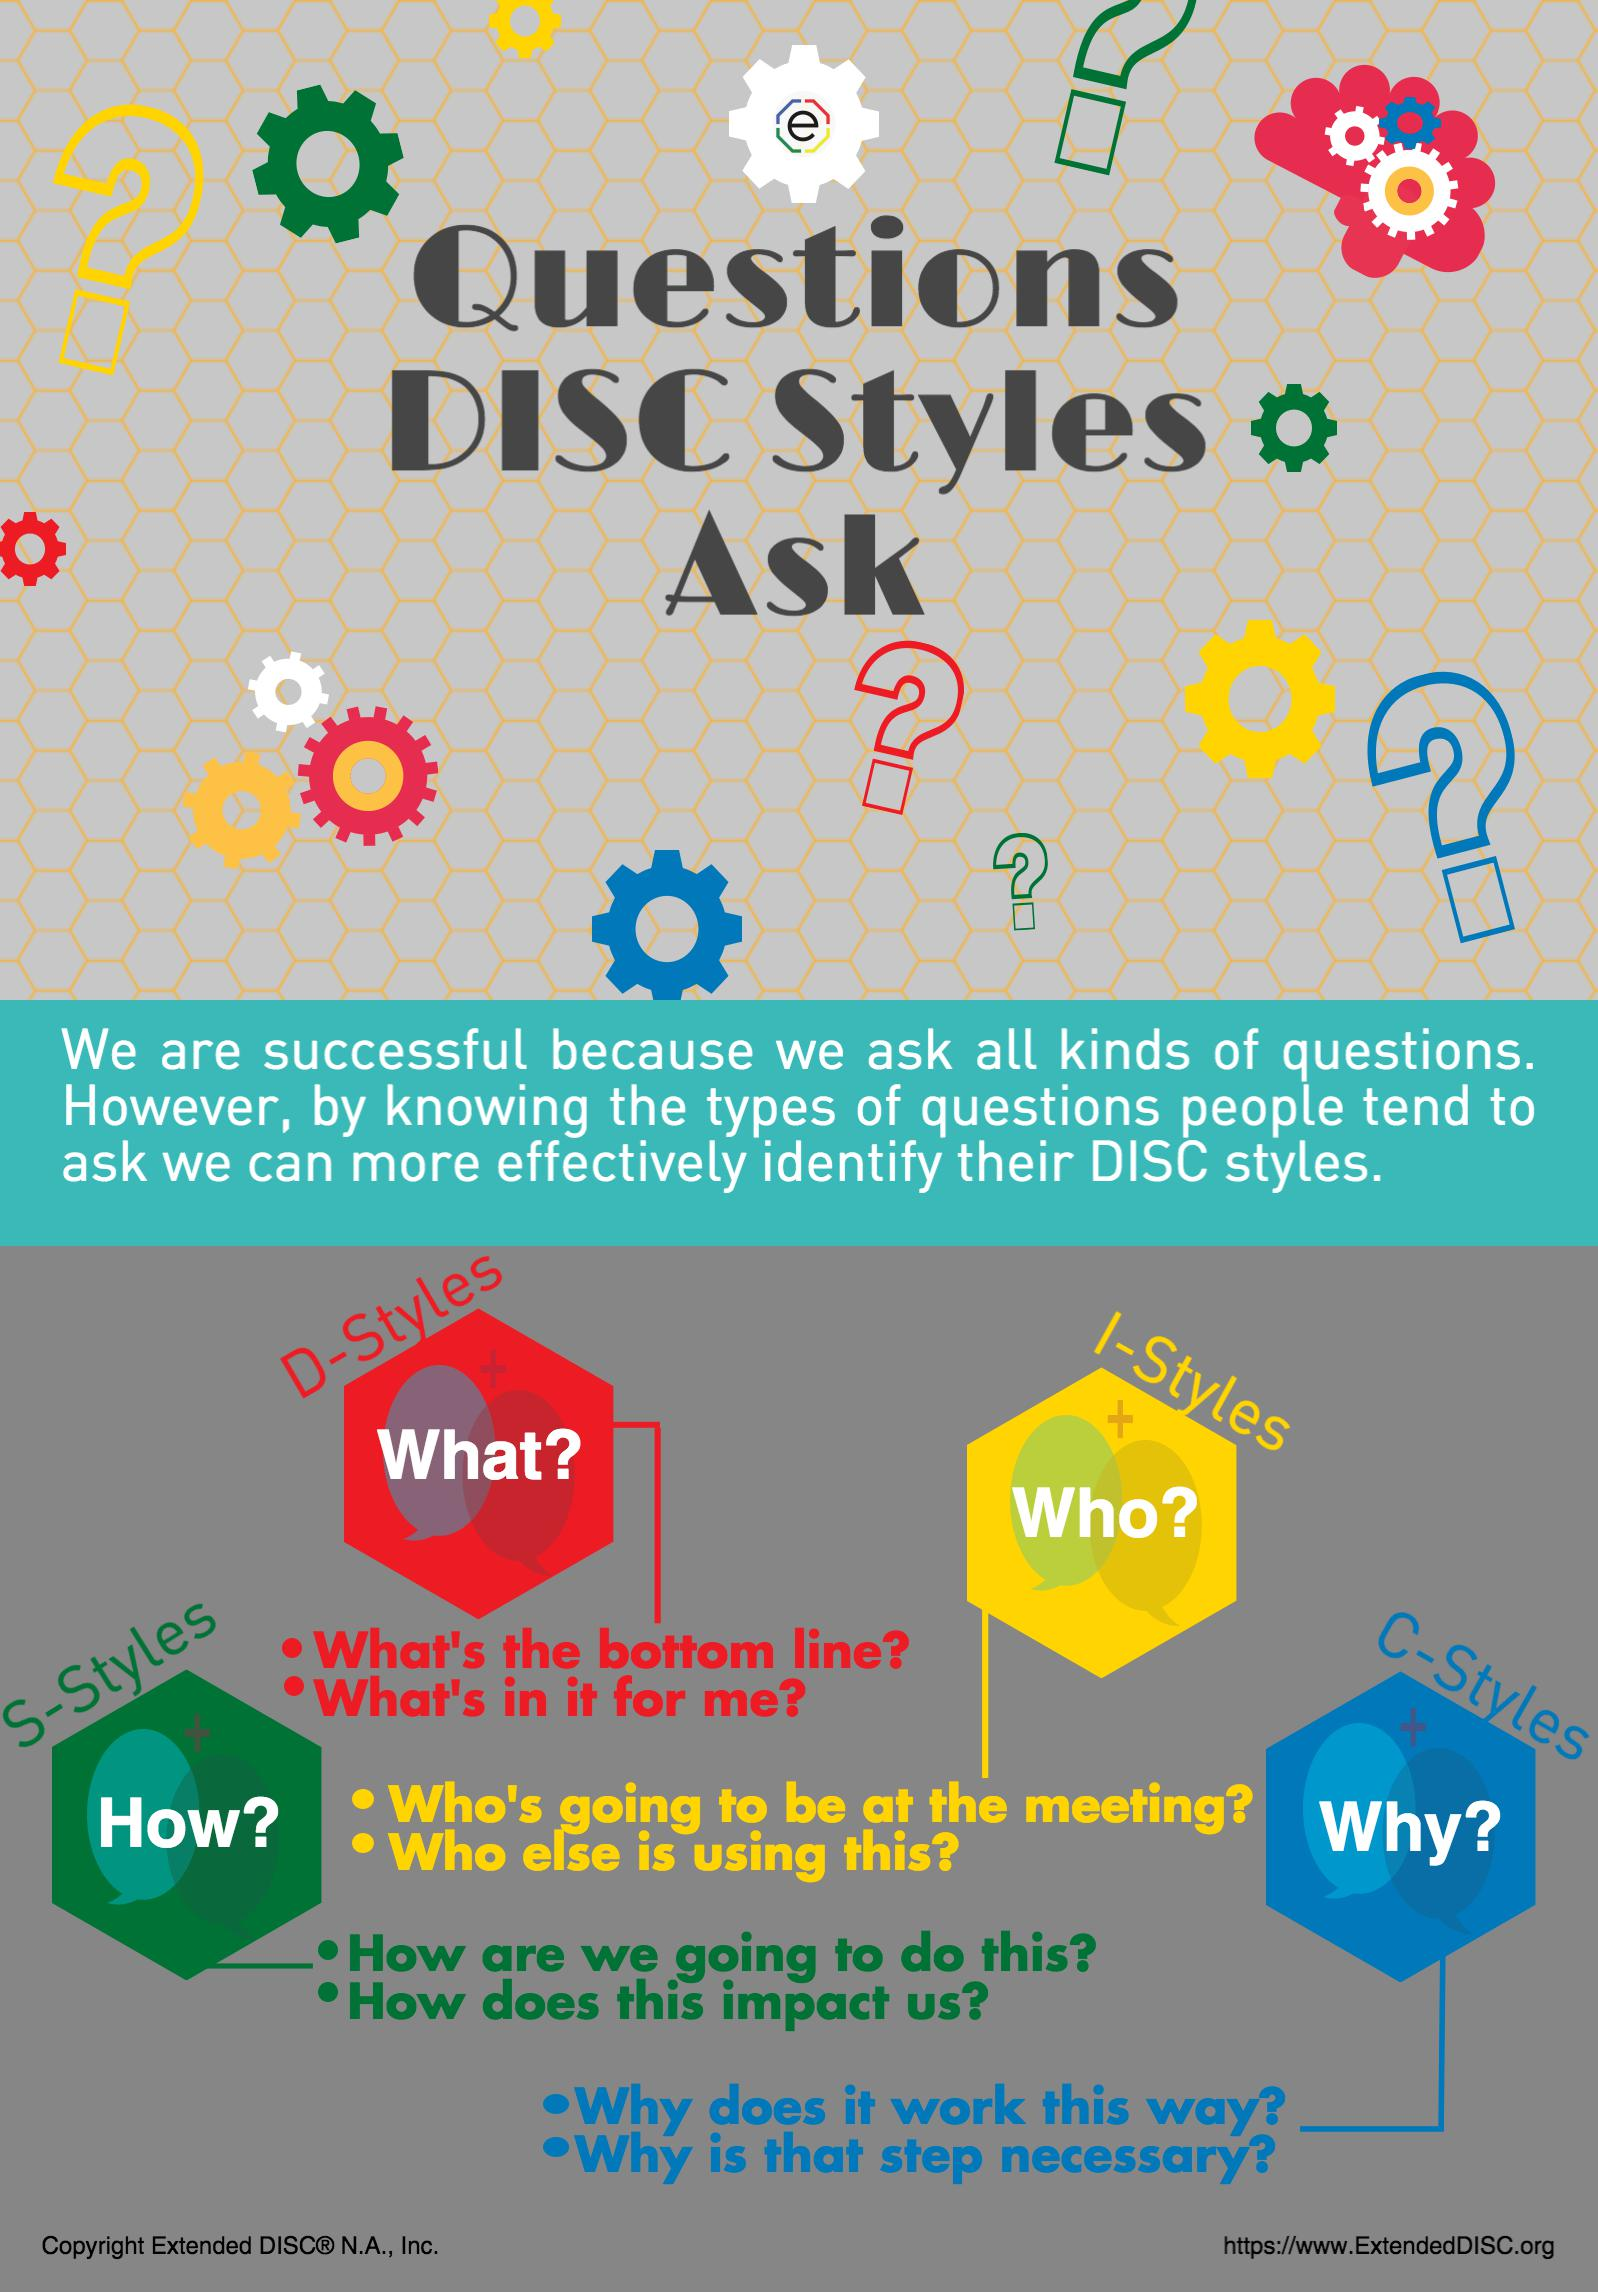 Questions DISC Styles Ask